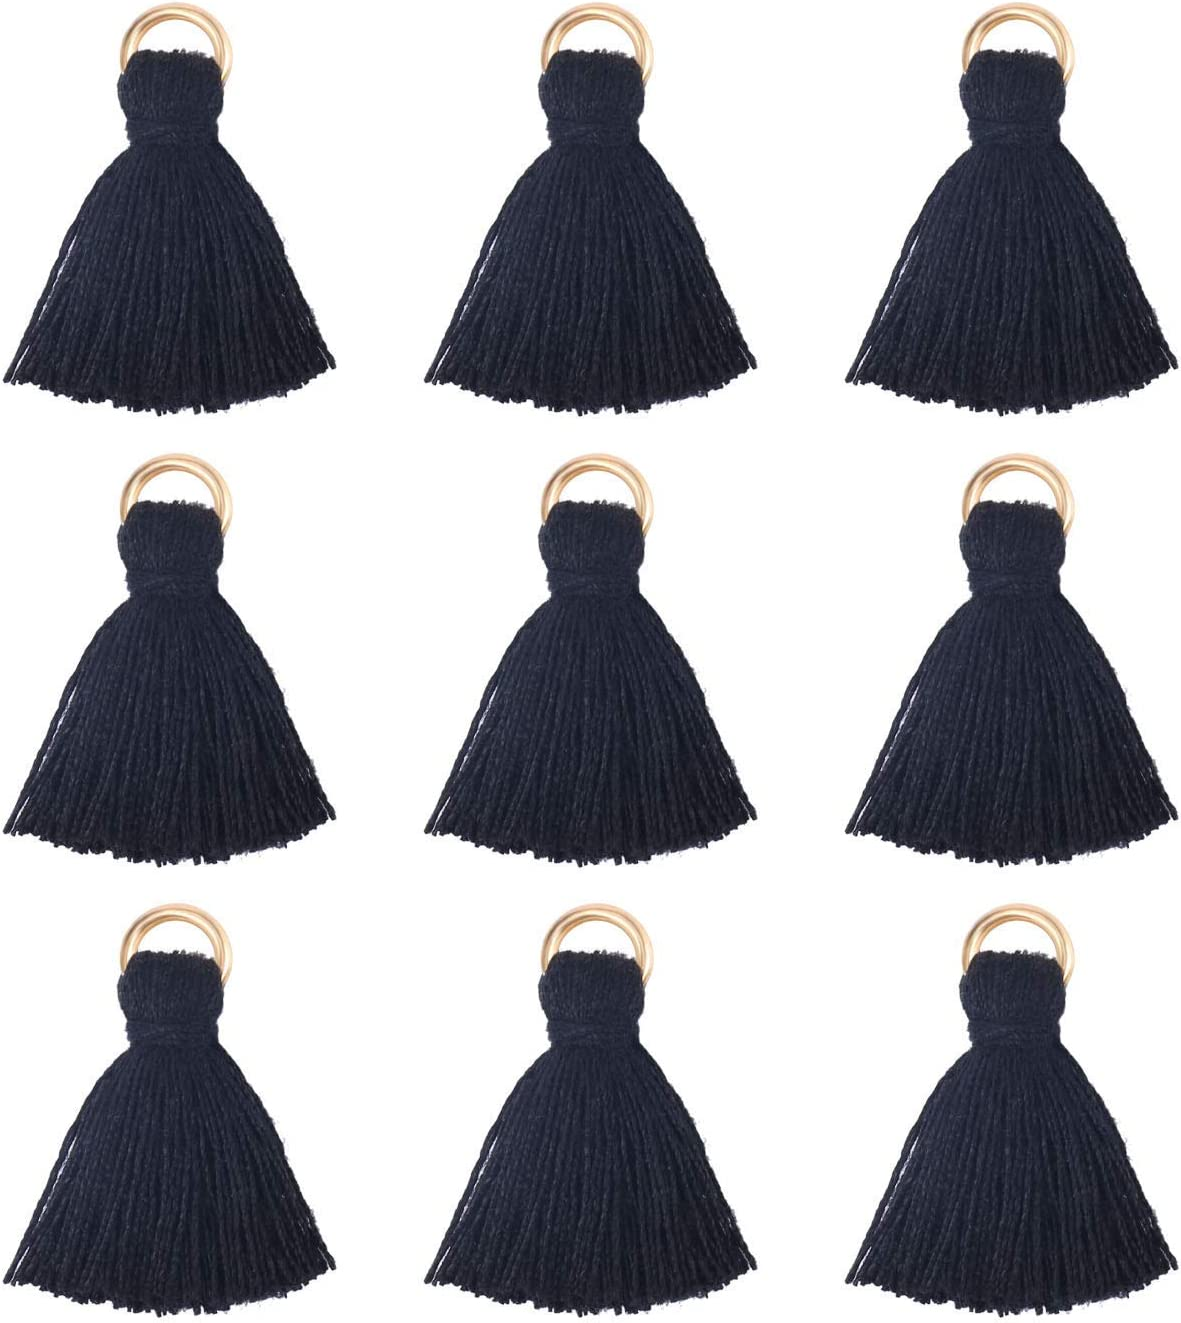 Wholesale Mini Black Tassel Special price Charms Thread Little Cotton Selling and selling Ta Short